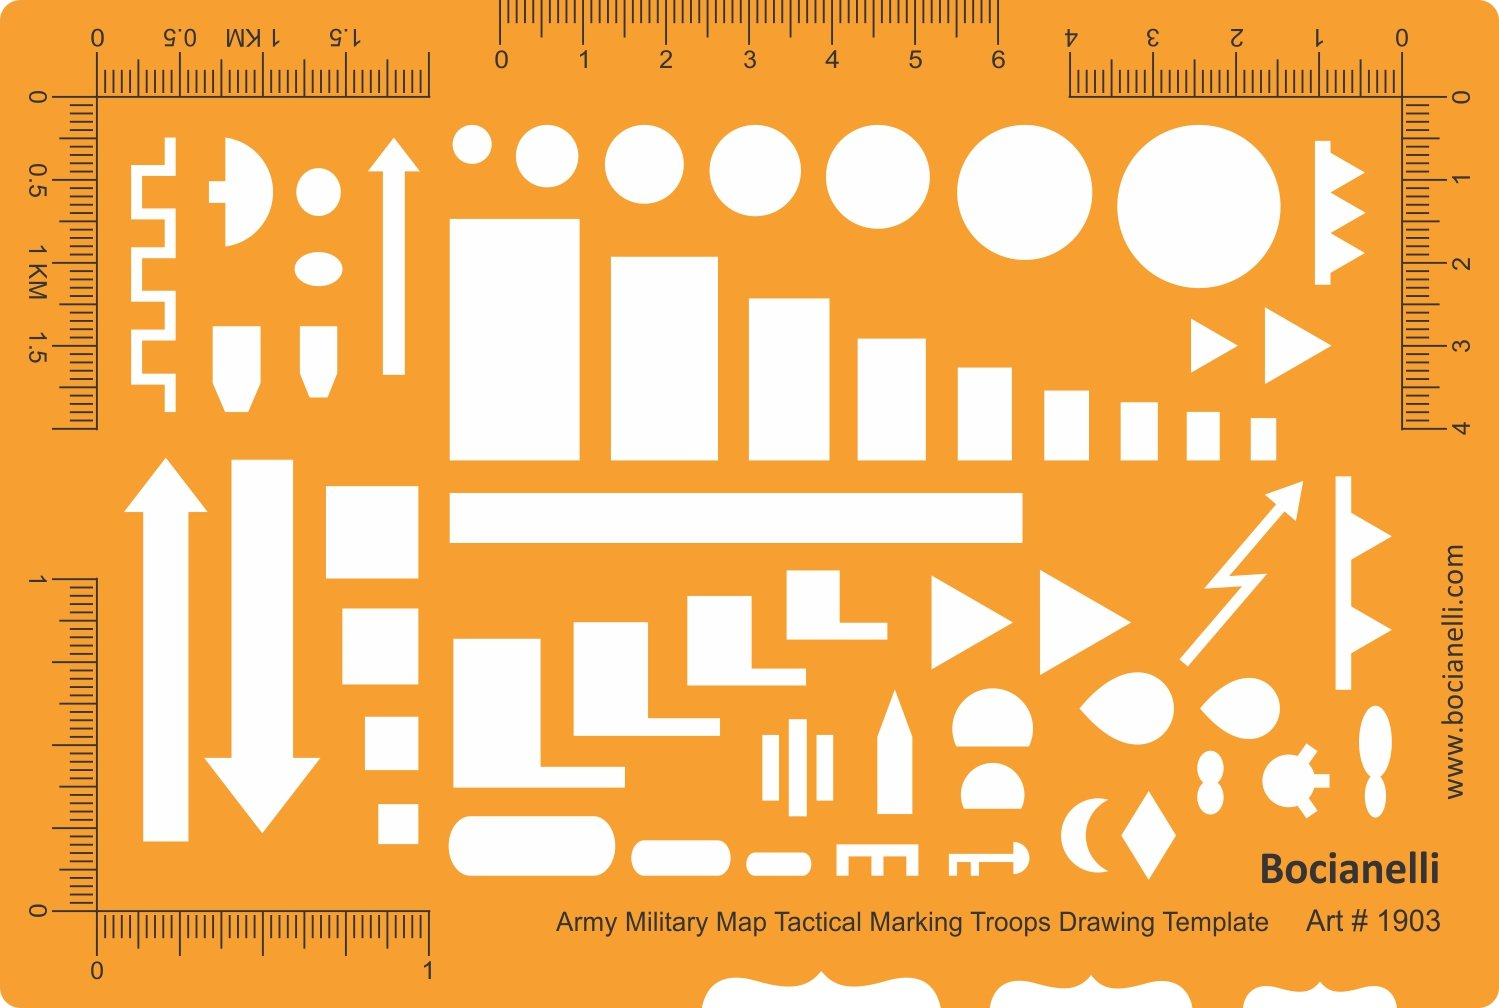 Nato army tactical military map marking symbols drawing template nato army tactical military map marking symbols drawing template stencil amazon office products biocorpaavc